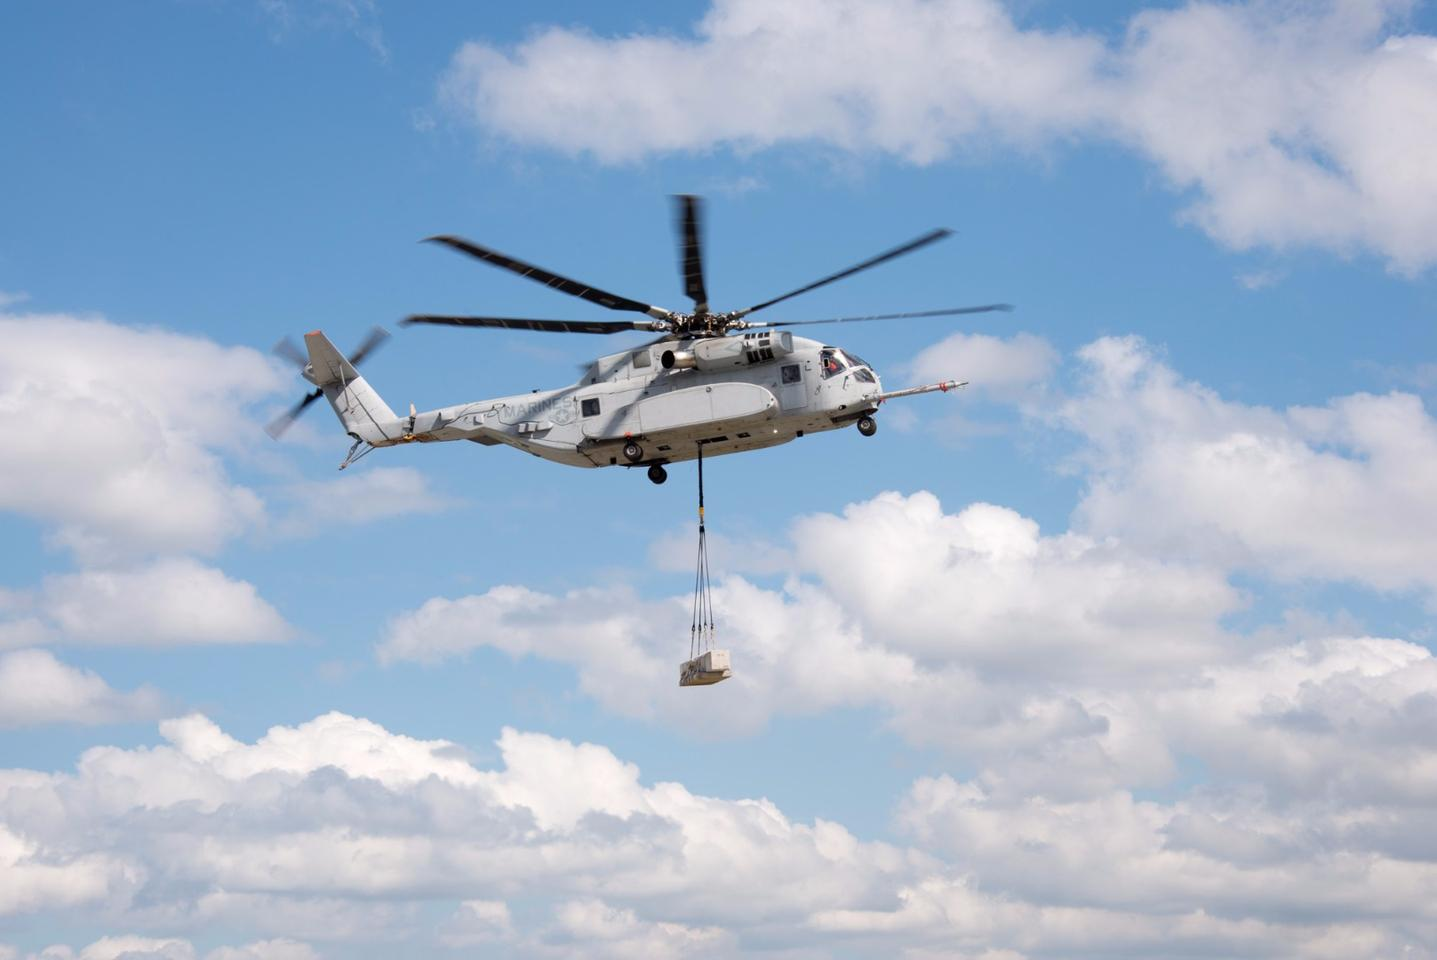 The US Marine Corps' biggest helicopter, the CH-53K King Stallion, has lifted its first 20,000 lb load in tests